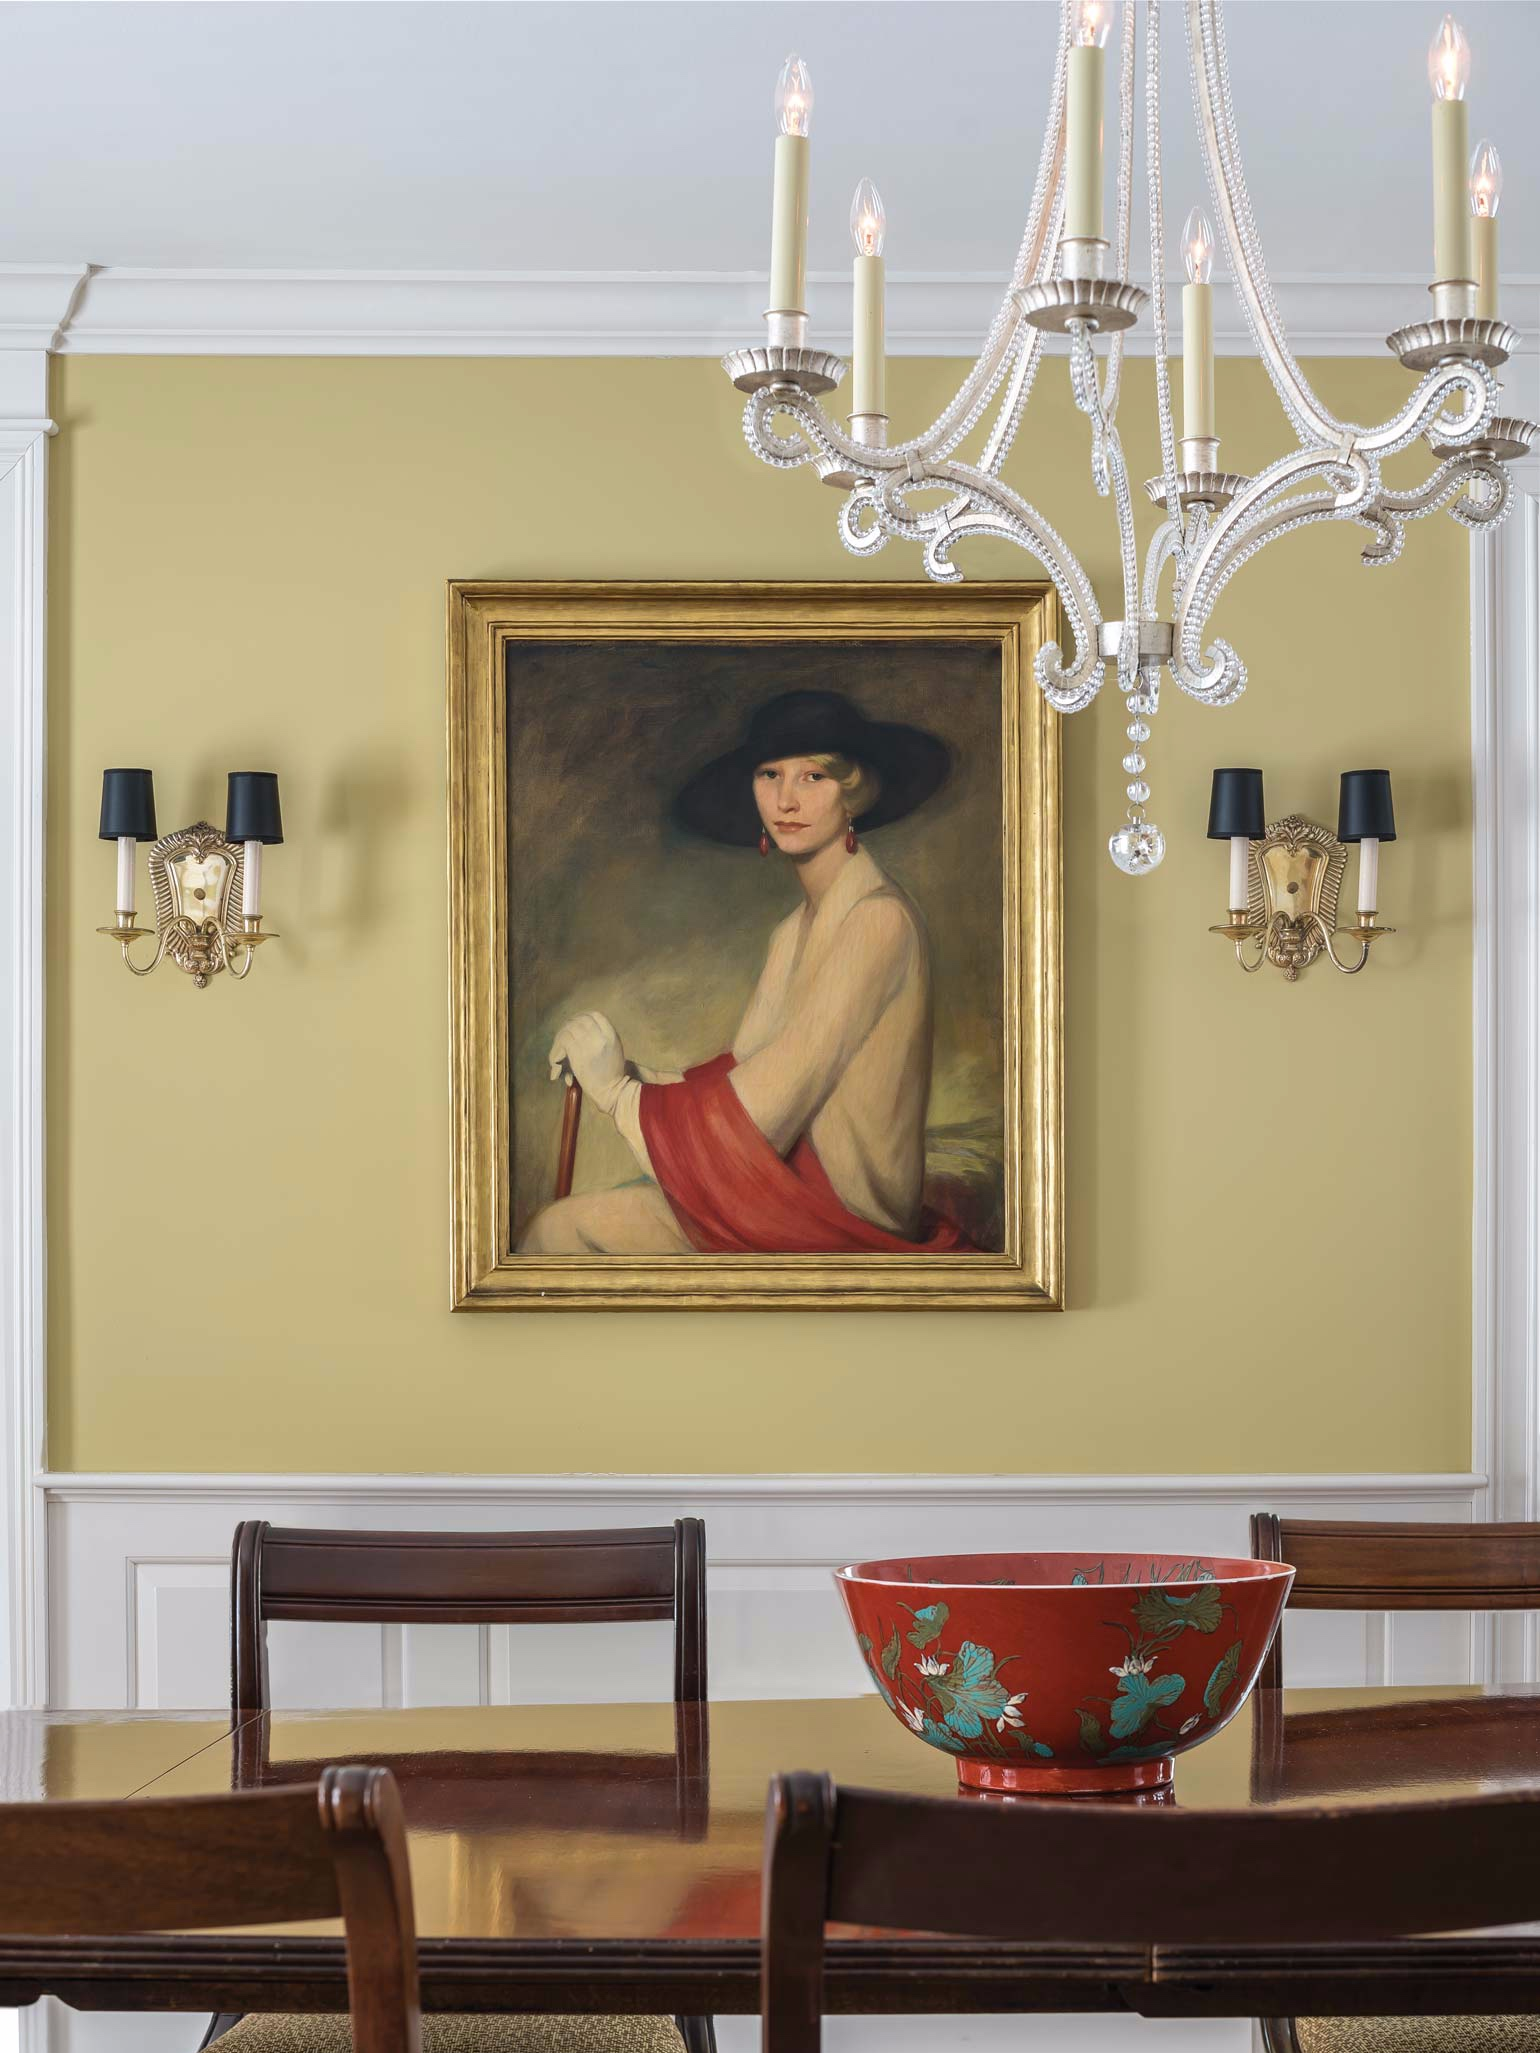 On the wall of the renovated dining room hangs a portrait of Will Ethridge's grandmother, Helen McIntyre, painted by Cecil Clark Davis. A chandelier of Venetian glass, selected by Linda Banks, complements the decor and casts a gentle light.